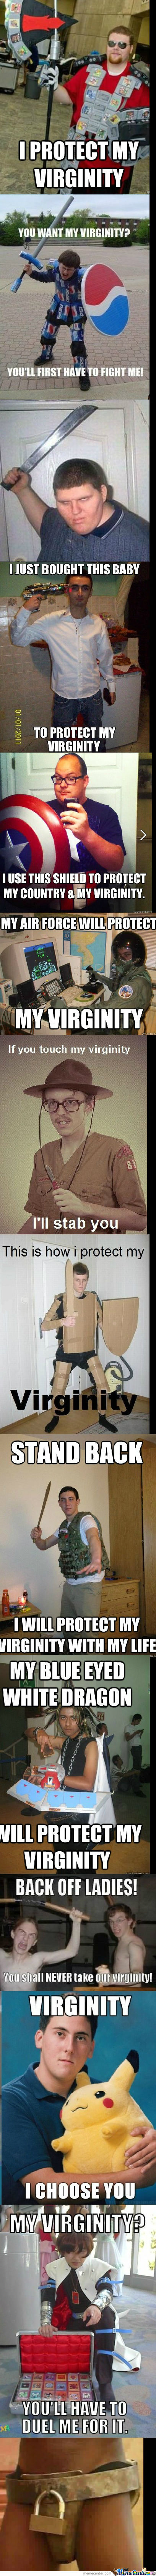 Thats How I Protect My Virginity